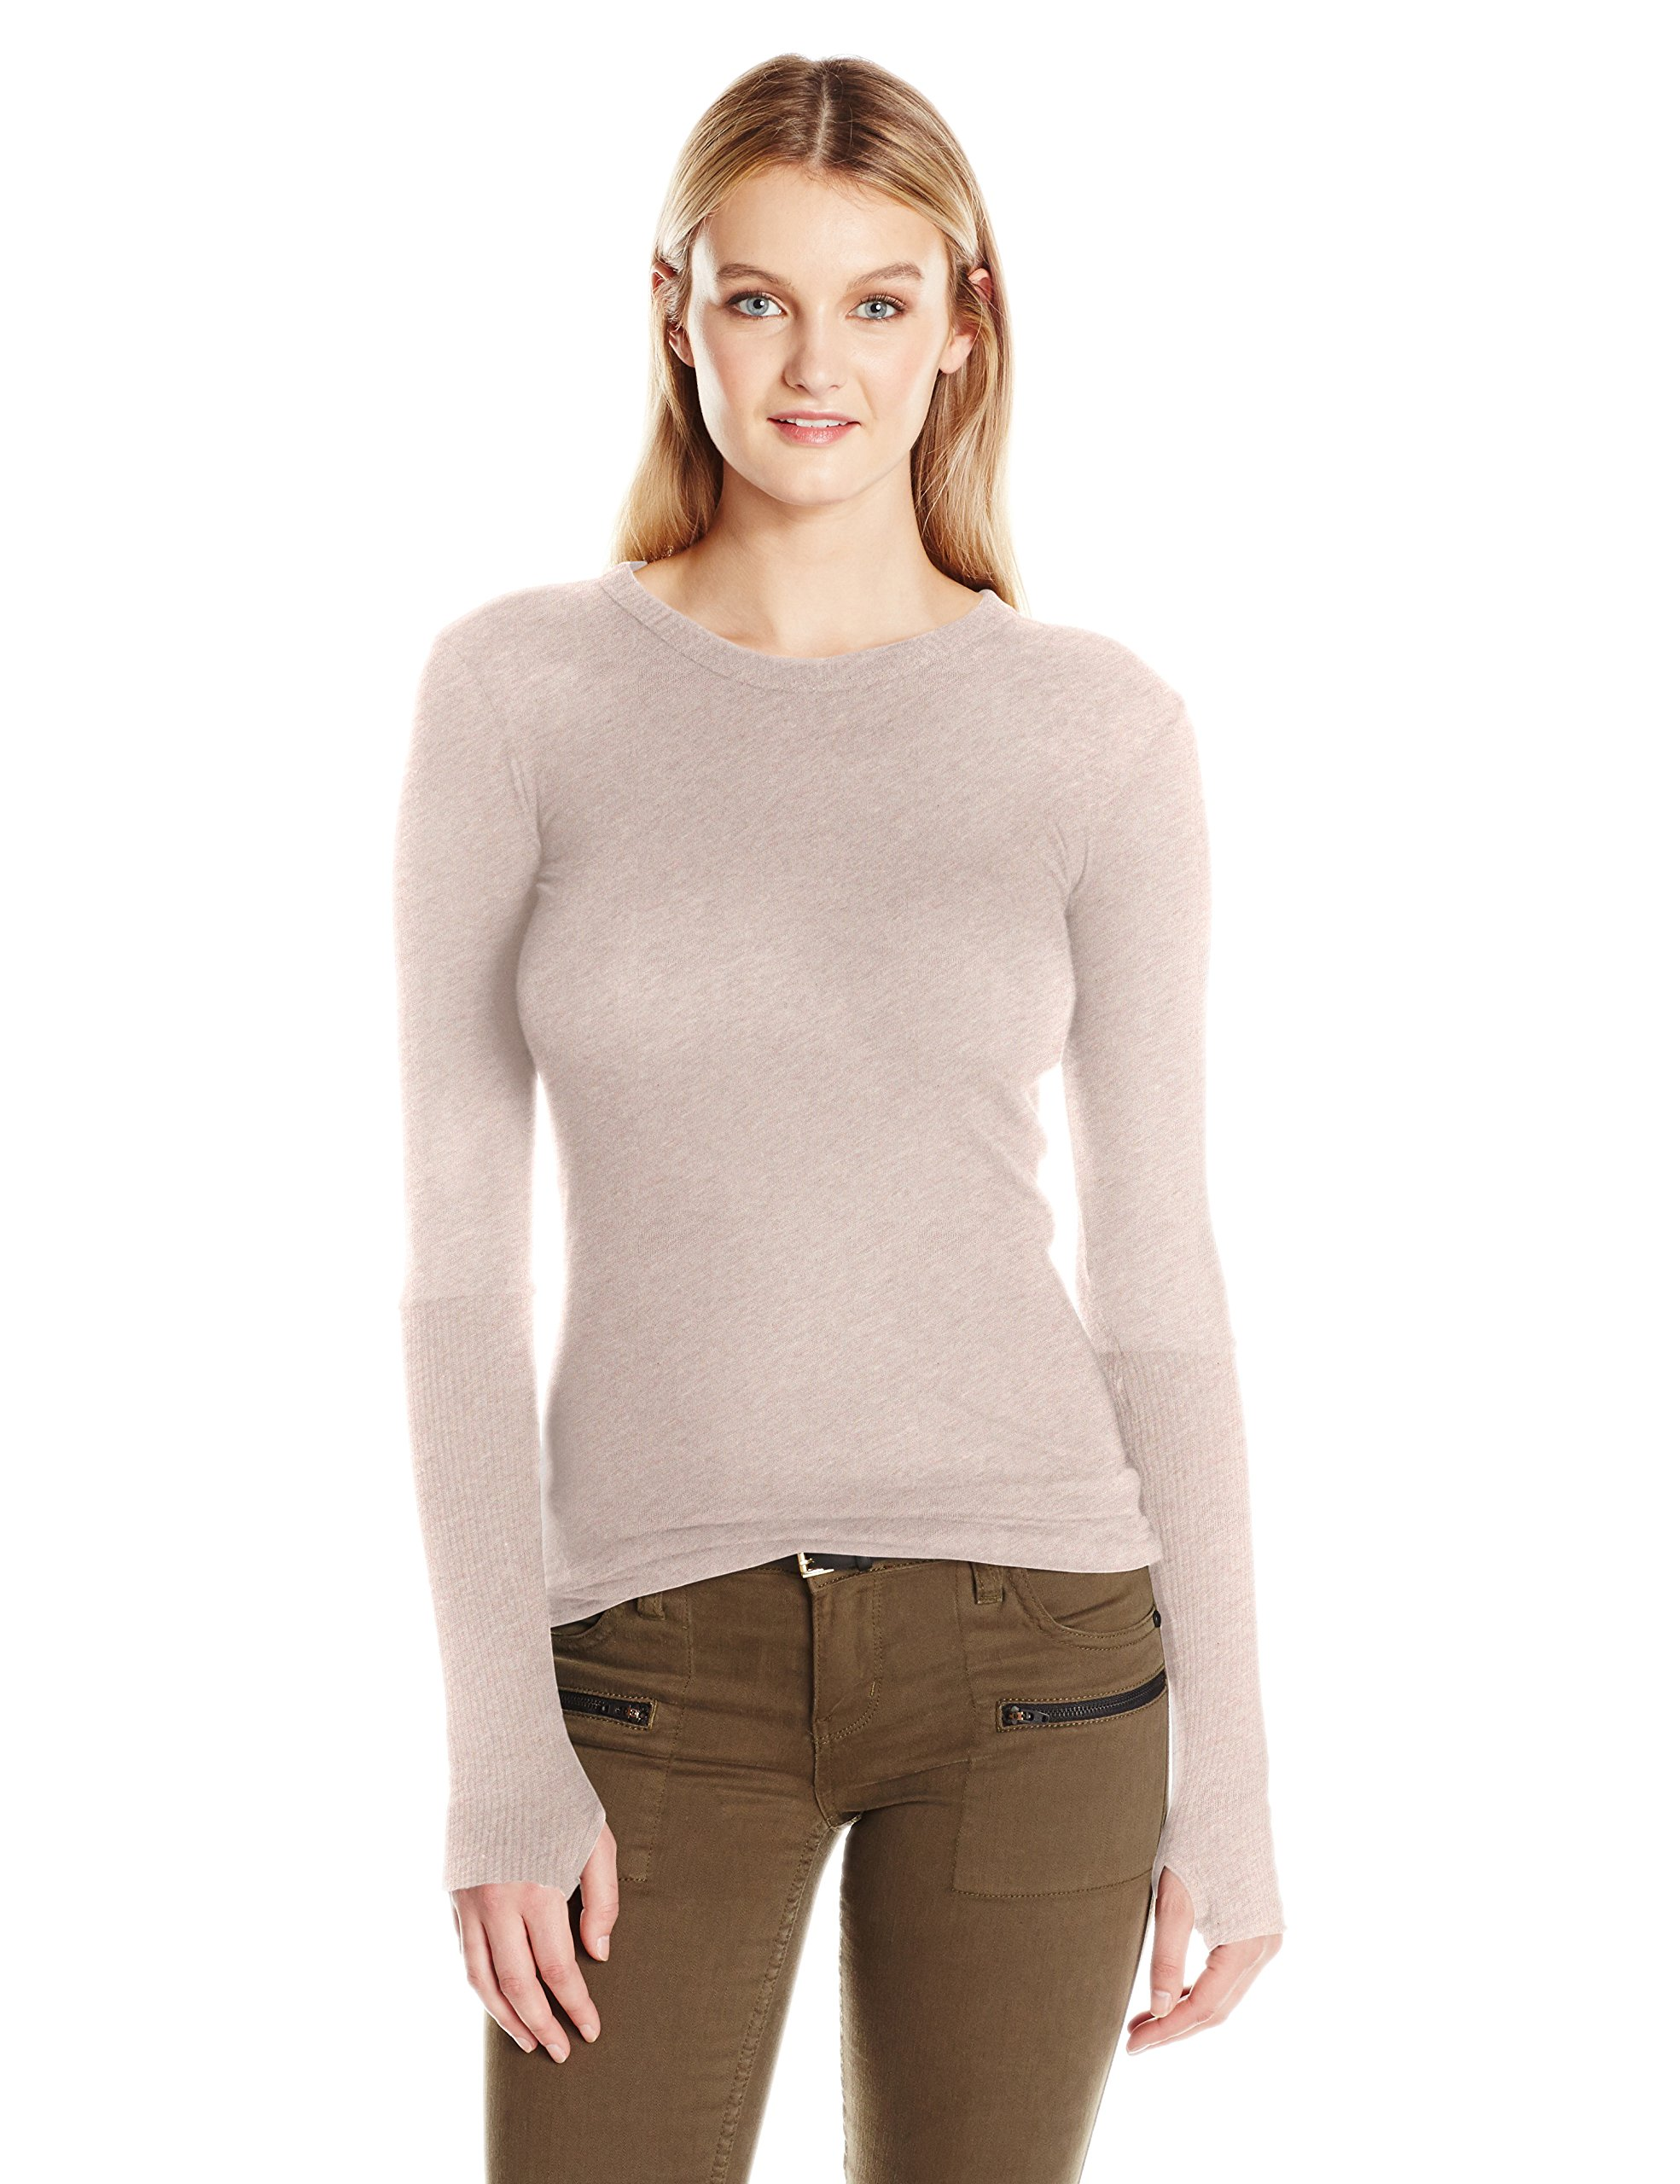 Enza Costa Women's Cashmere Long Sleeve Cuffed Crew With Thumbhole, Pink/Beige, L